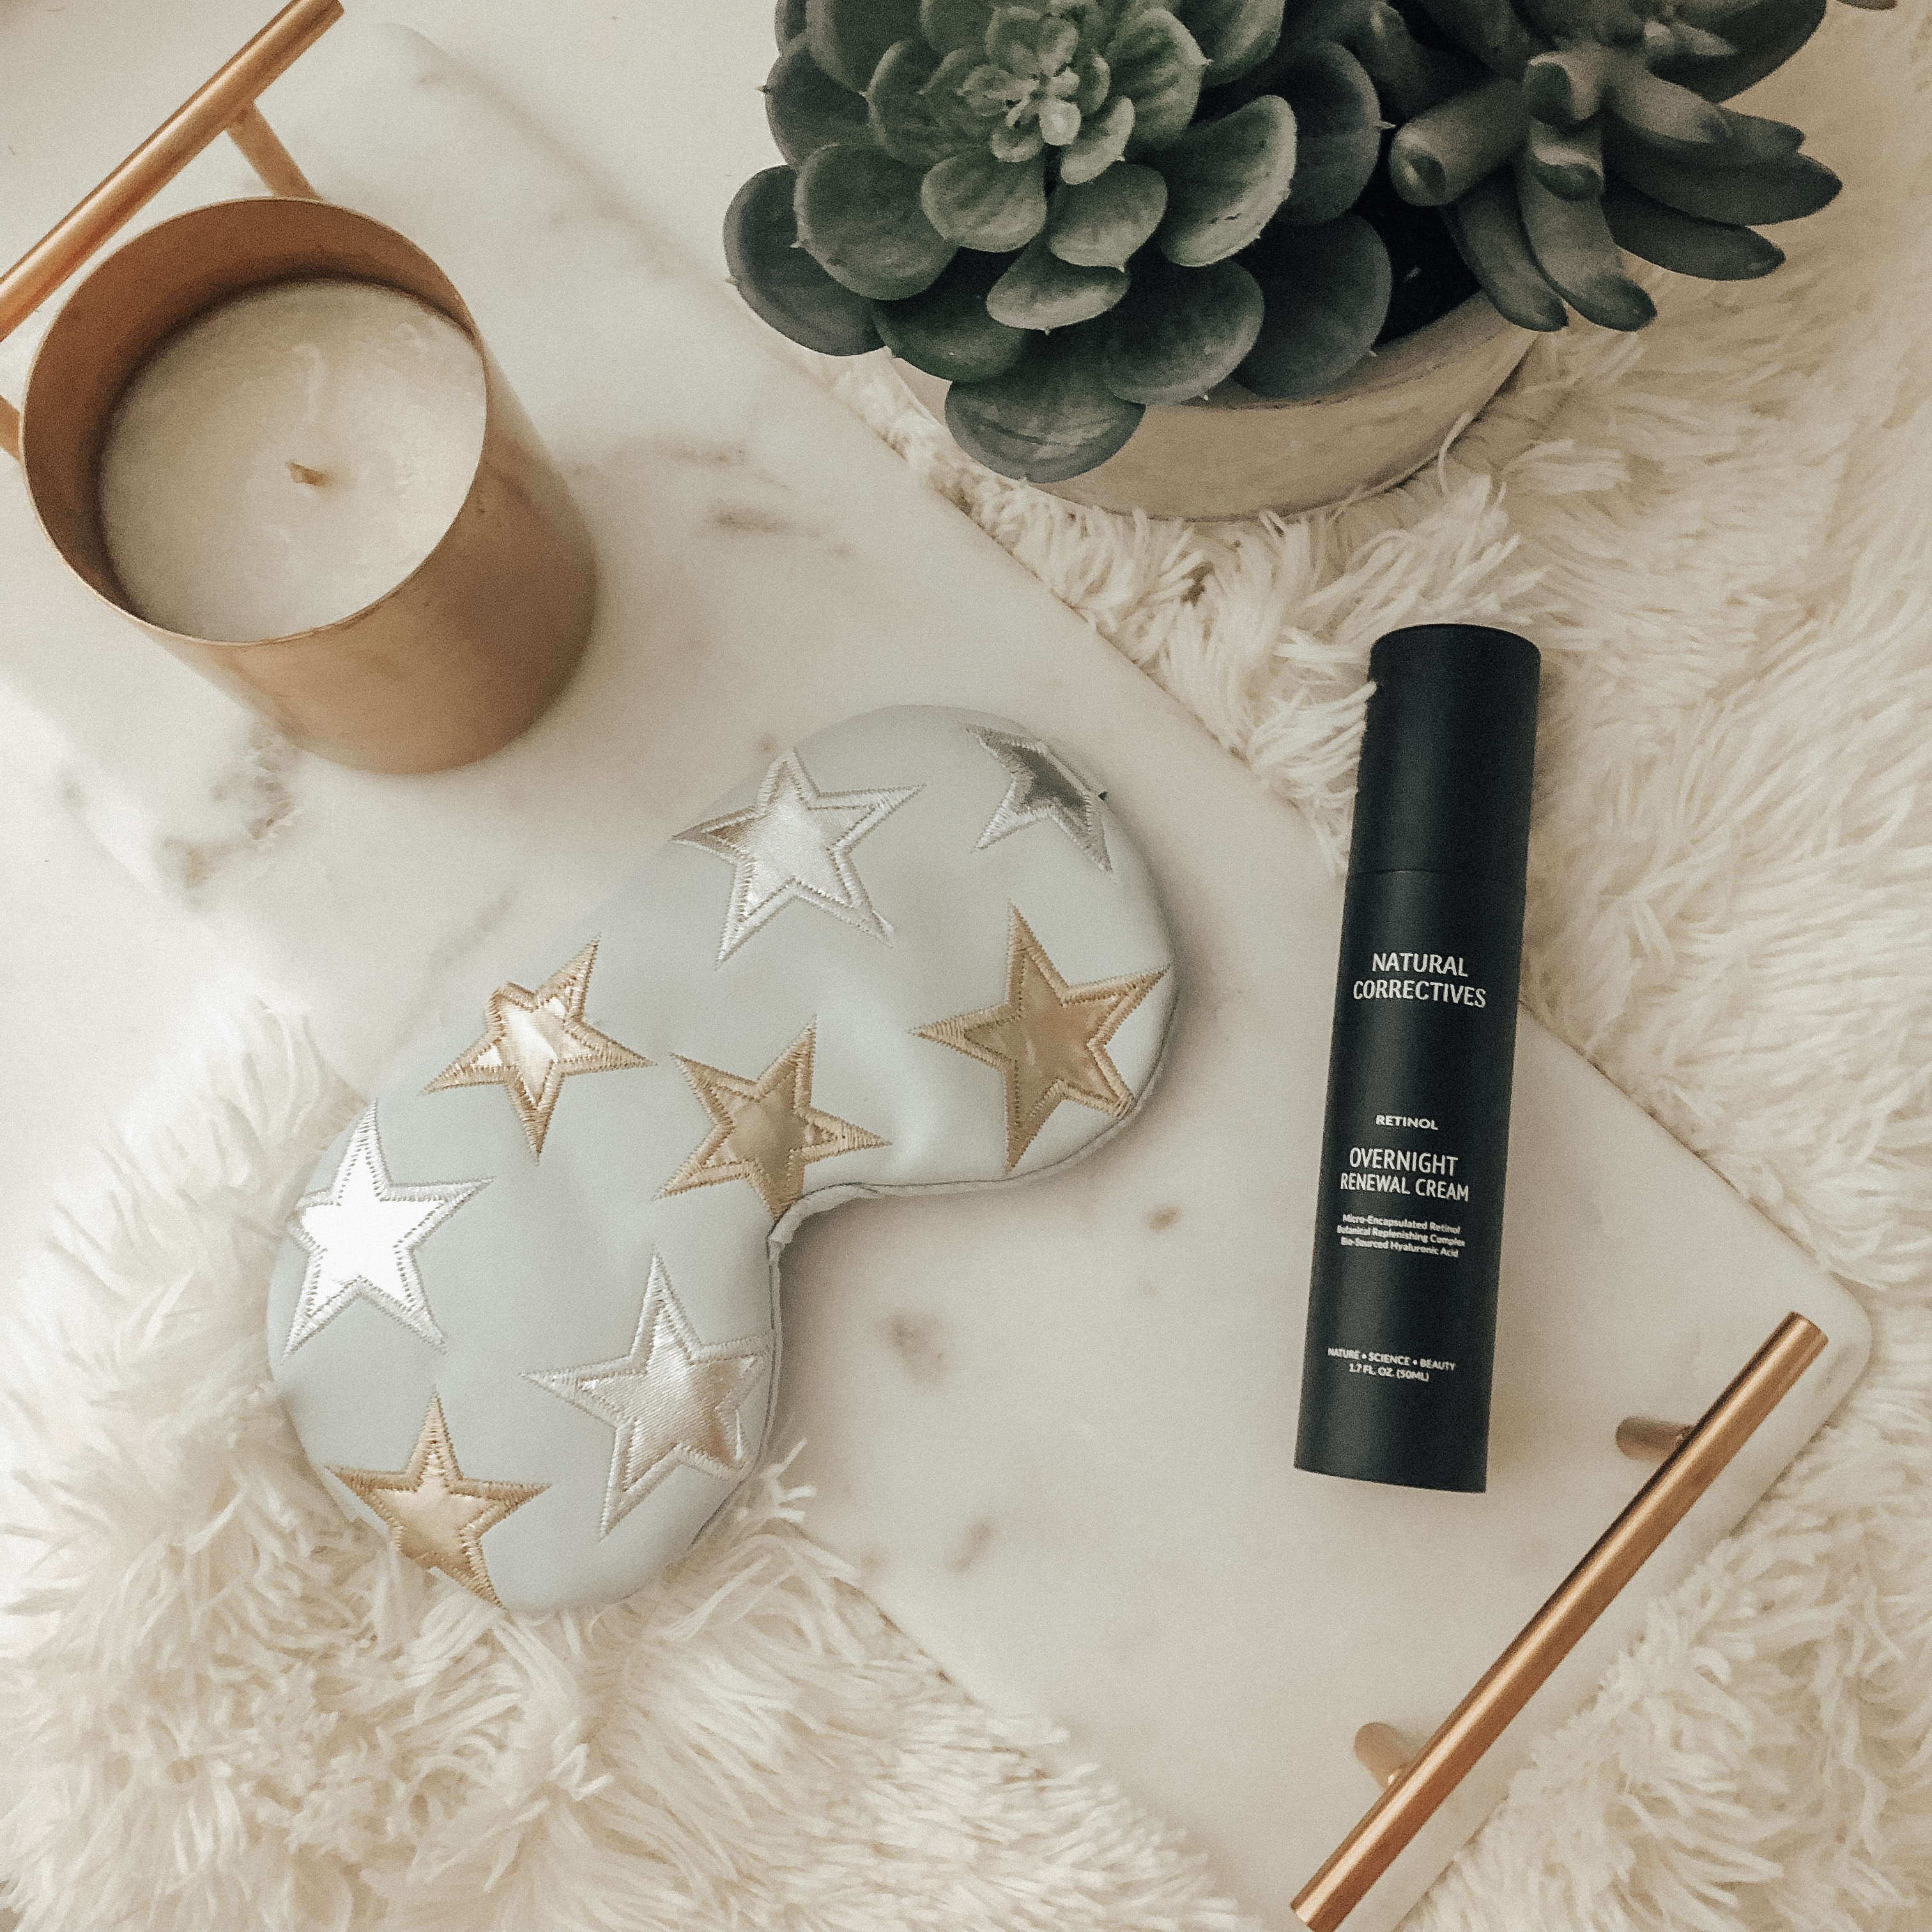 ADDING NATURAL CORRECTIVES RENEWAL CREAM TO MY NIGHTTIME ROUTINE- Jaclyn De Leon Style + beauty tips + retinol cream + skin care + anti aging cream +beauty secrets + natural anti aging and soothing ingredients + products to use + bedtime routine